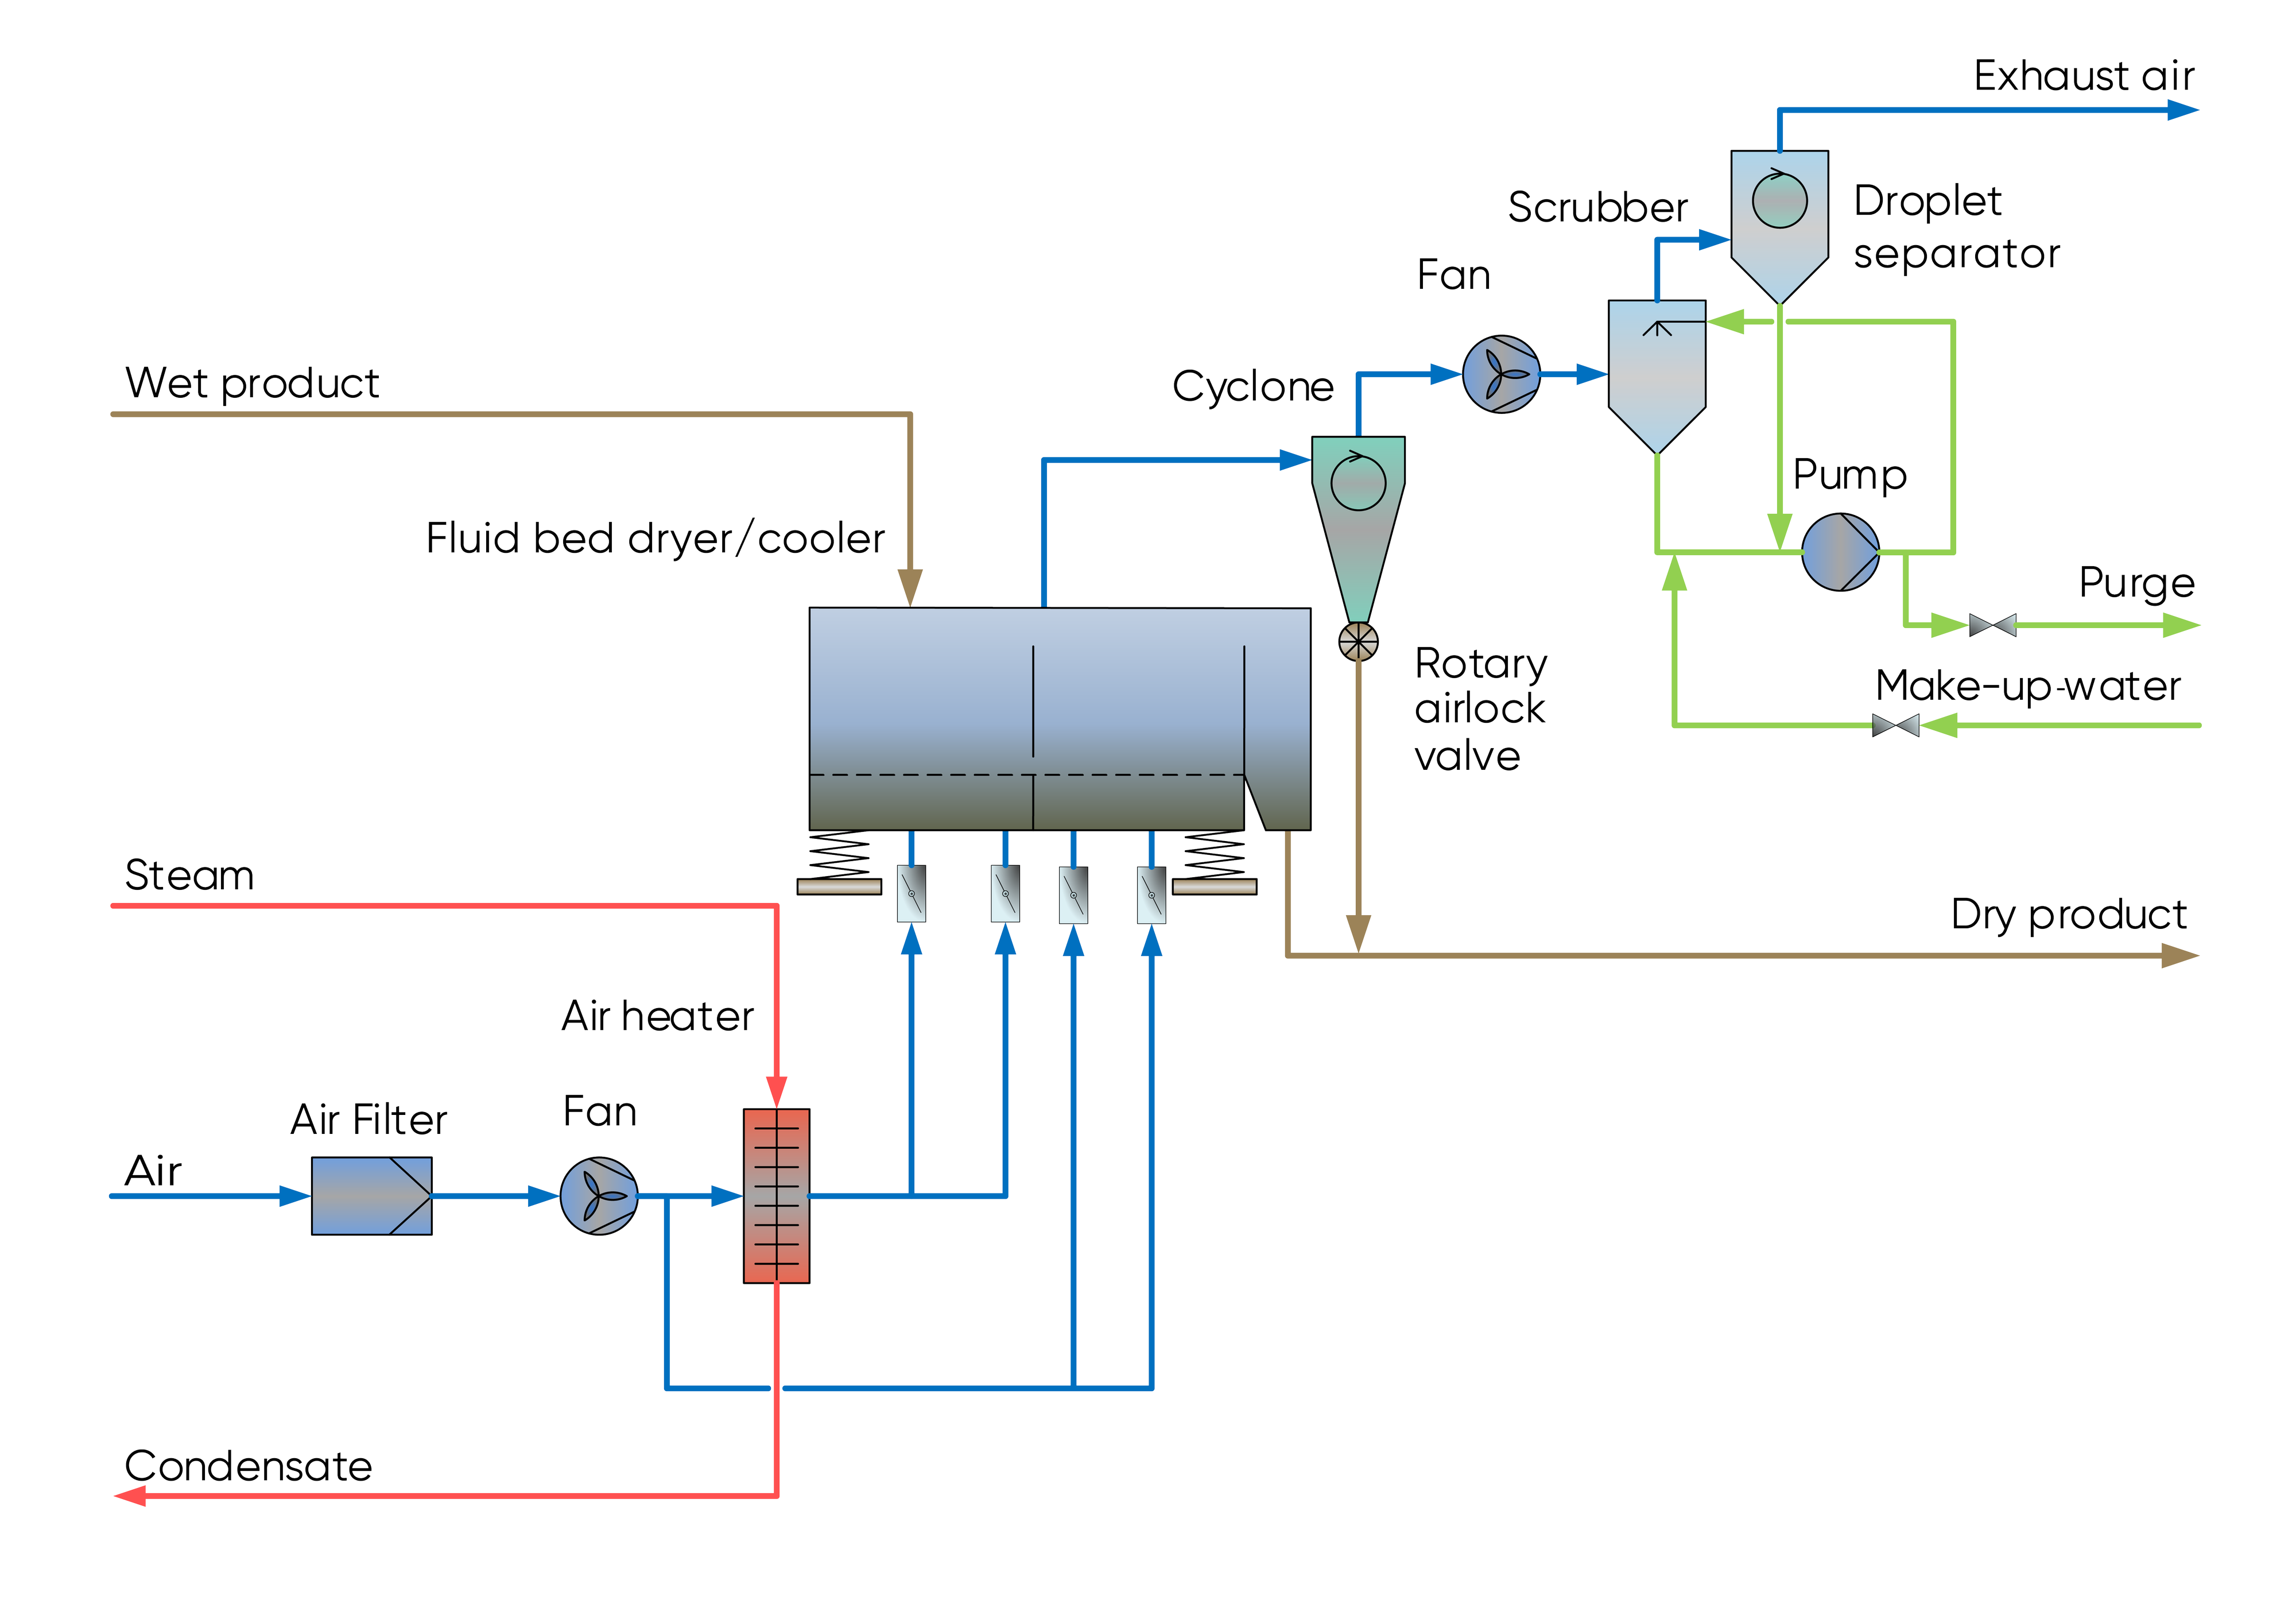 Typical system set-up with a VDC fluid bed dryer